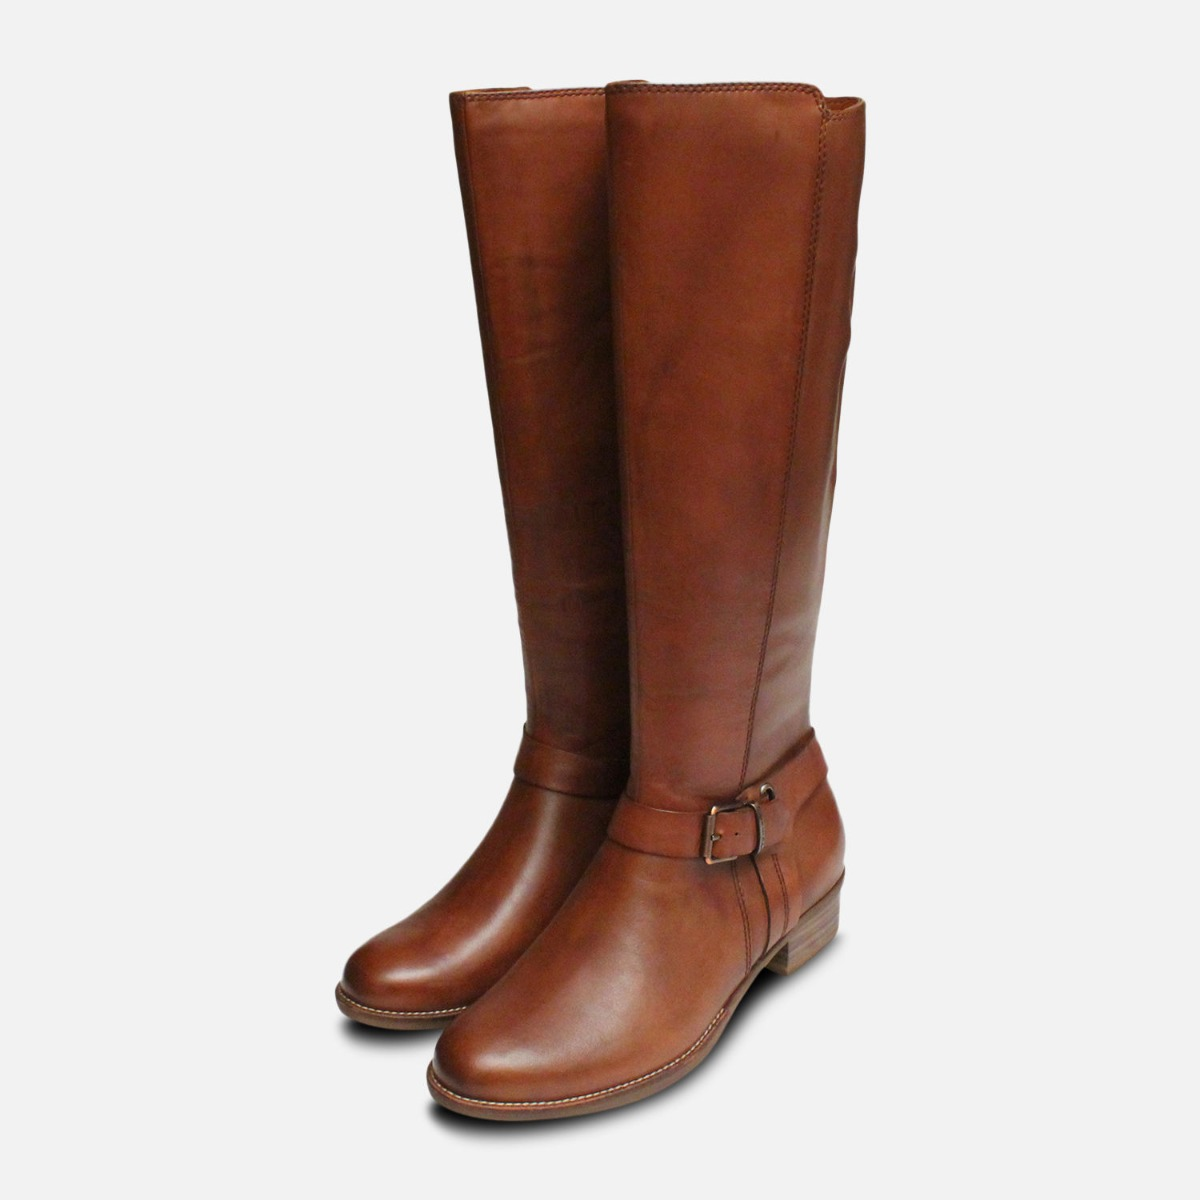 Details about Tamaris Brown Leather Ladies Tall Zip Boots